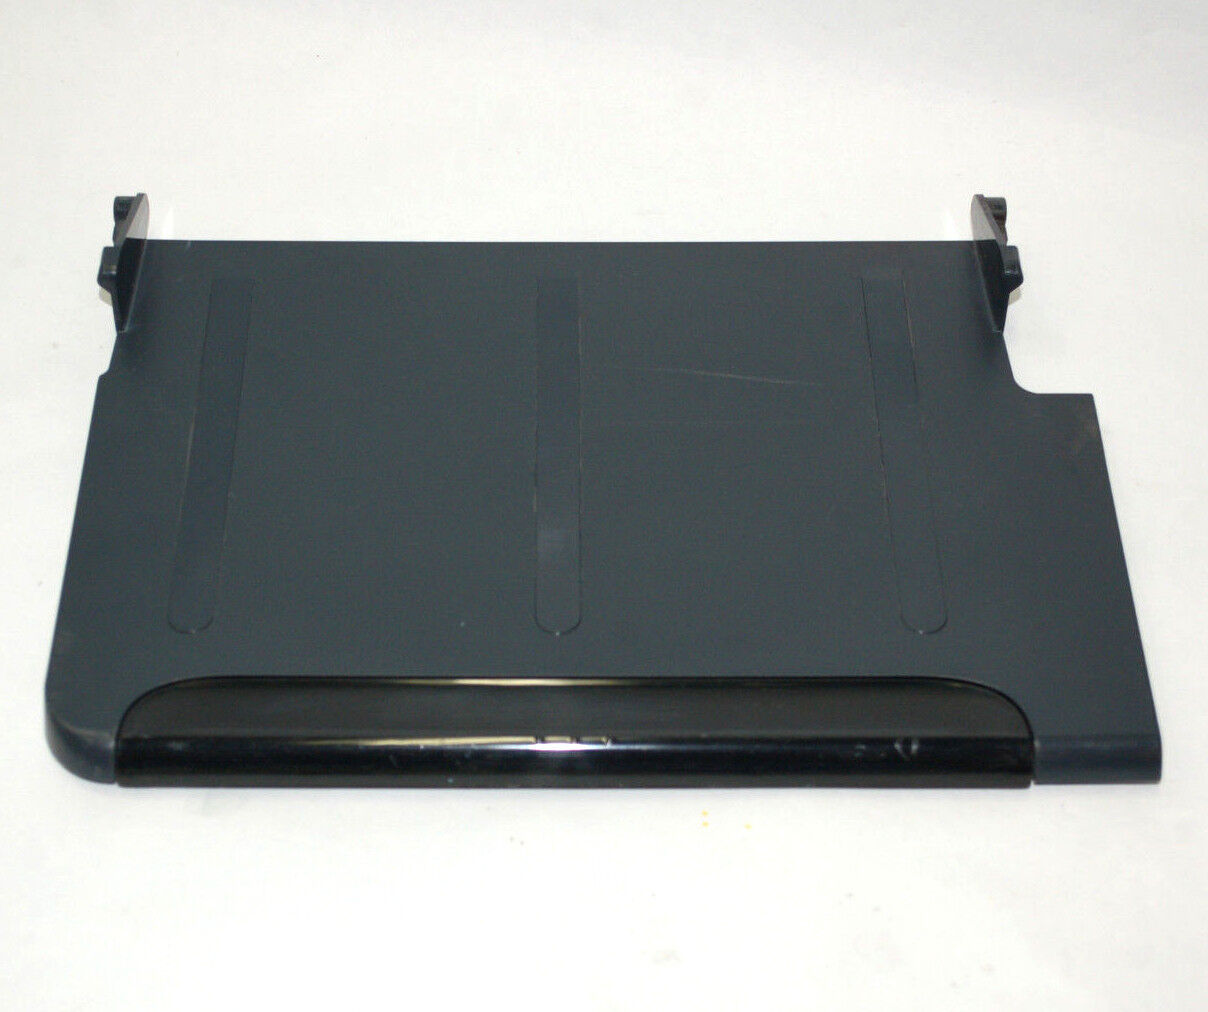 ... UPC 796930219048 product image for Hp Officejet J6450 J6480 Printer  Output Paper Catch Tray Unit /